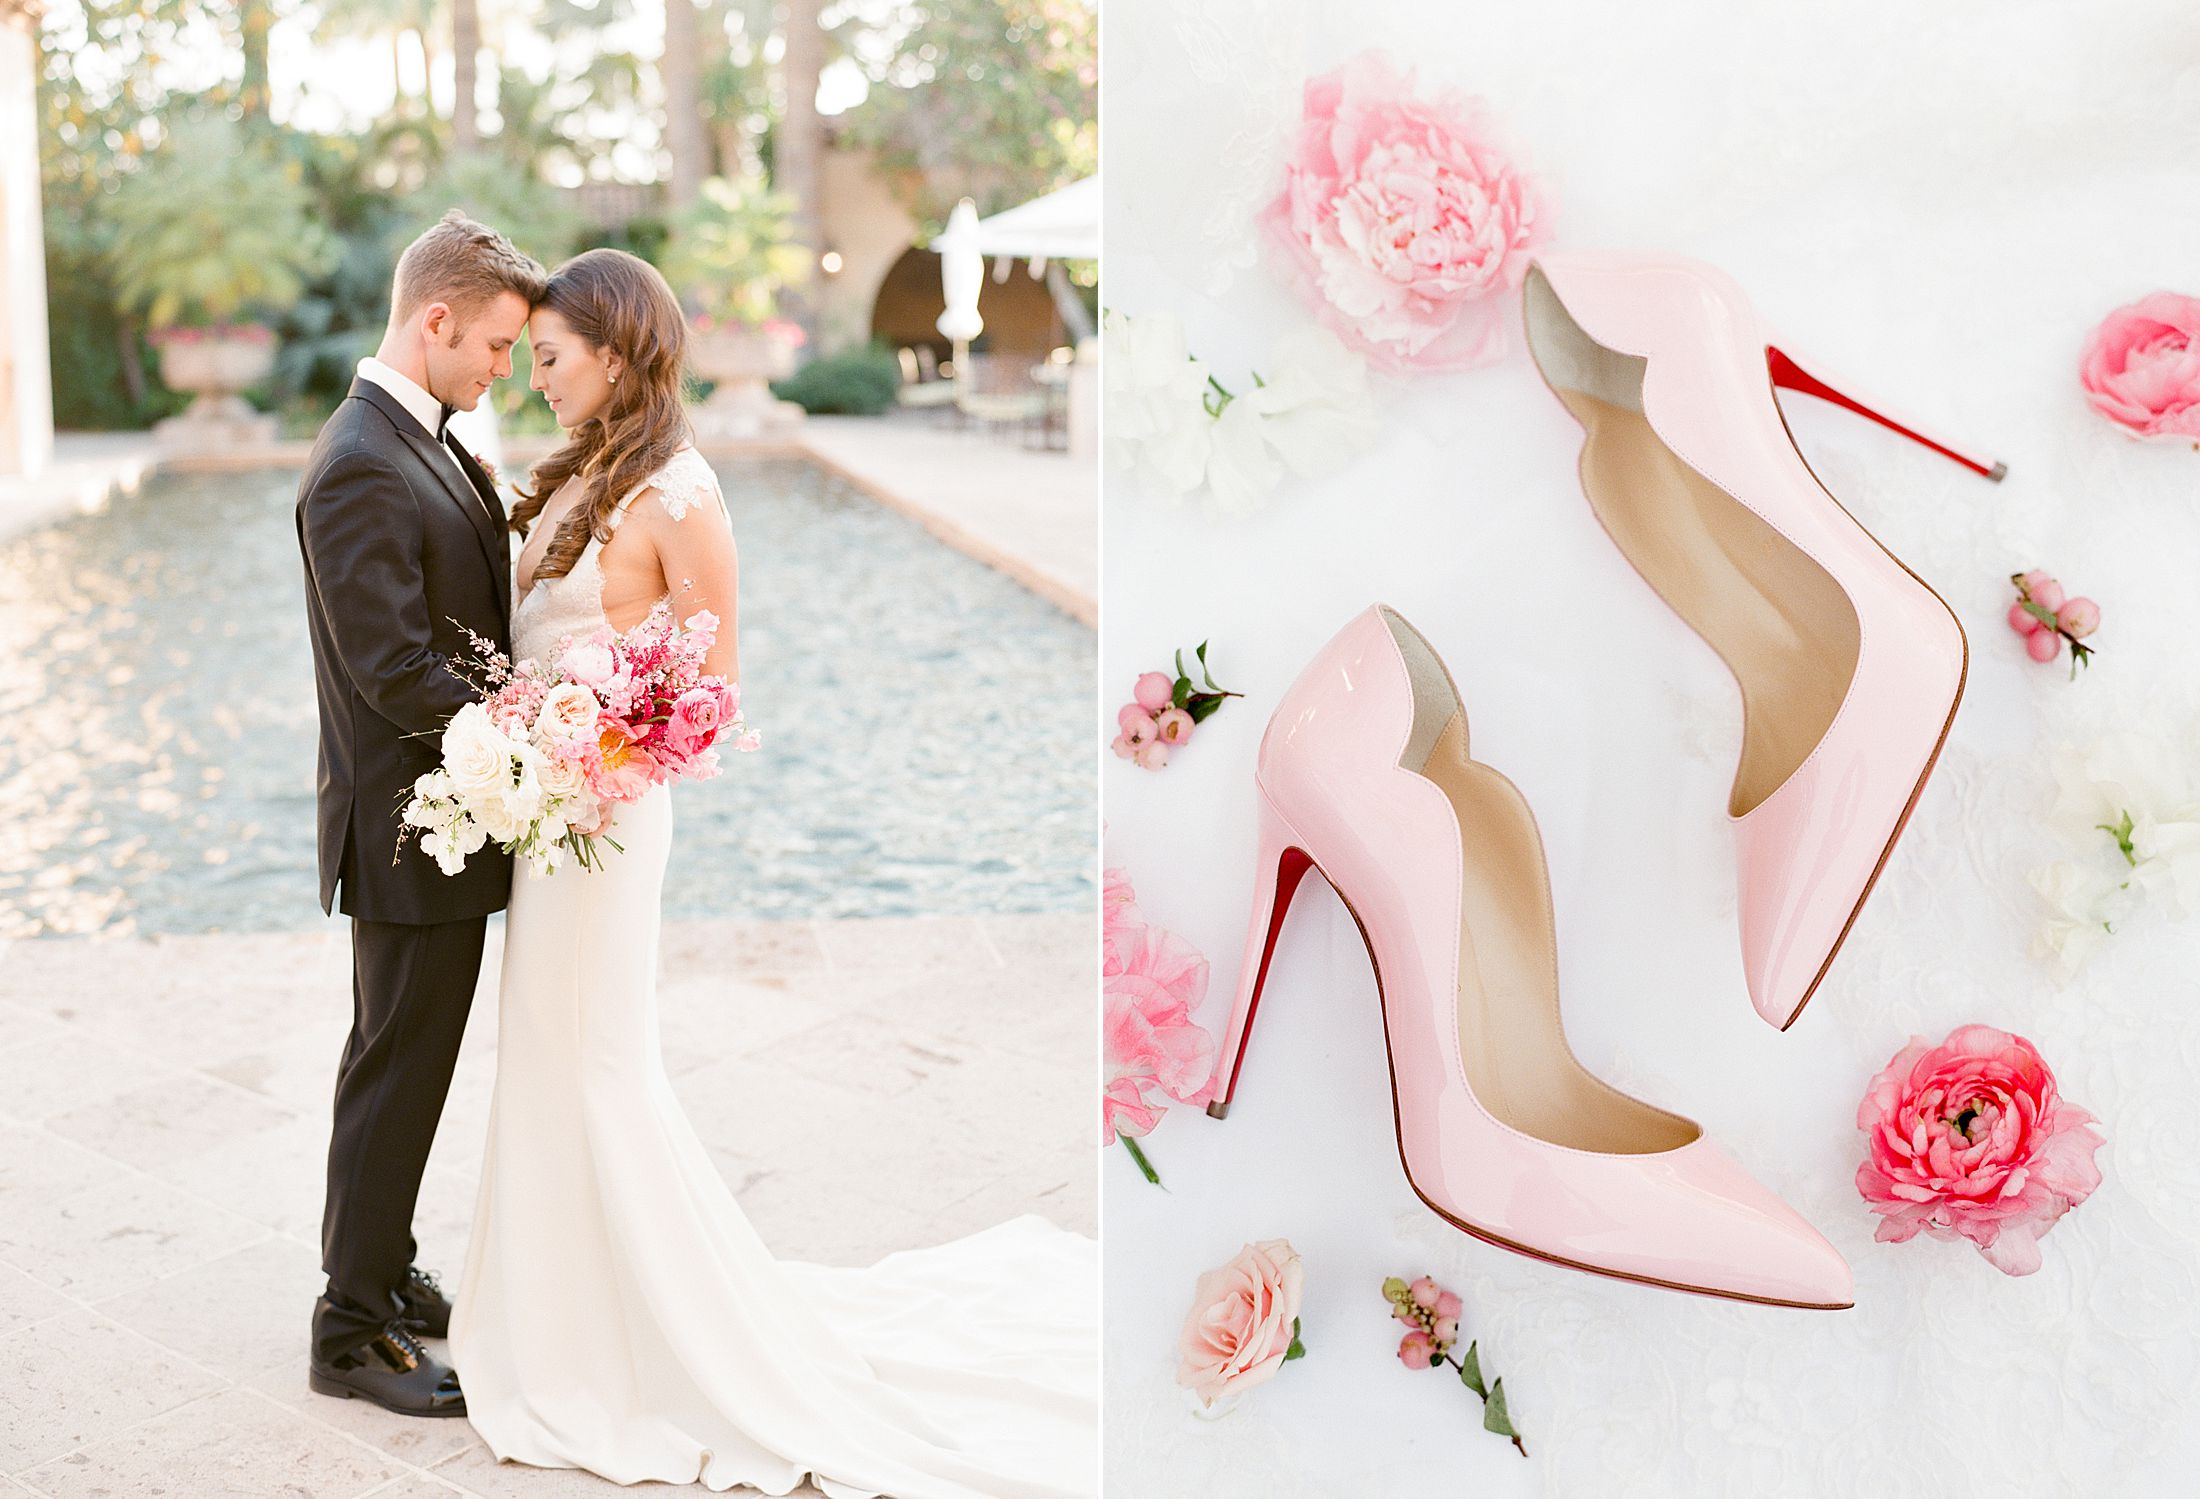 Pink Ombre Wedding Inspiration on Style Me Pretty - Royal Palms Wedding - Scottsdale Wedding - Ashley Baumgartner - Bloom and Blueprint - Wedding Puppies - Bulldog Puppies_0052.jpg